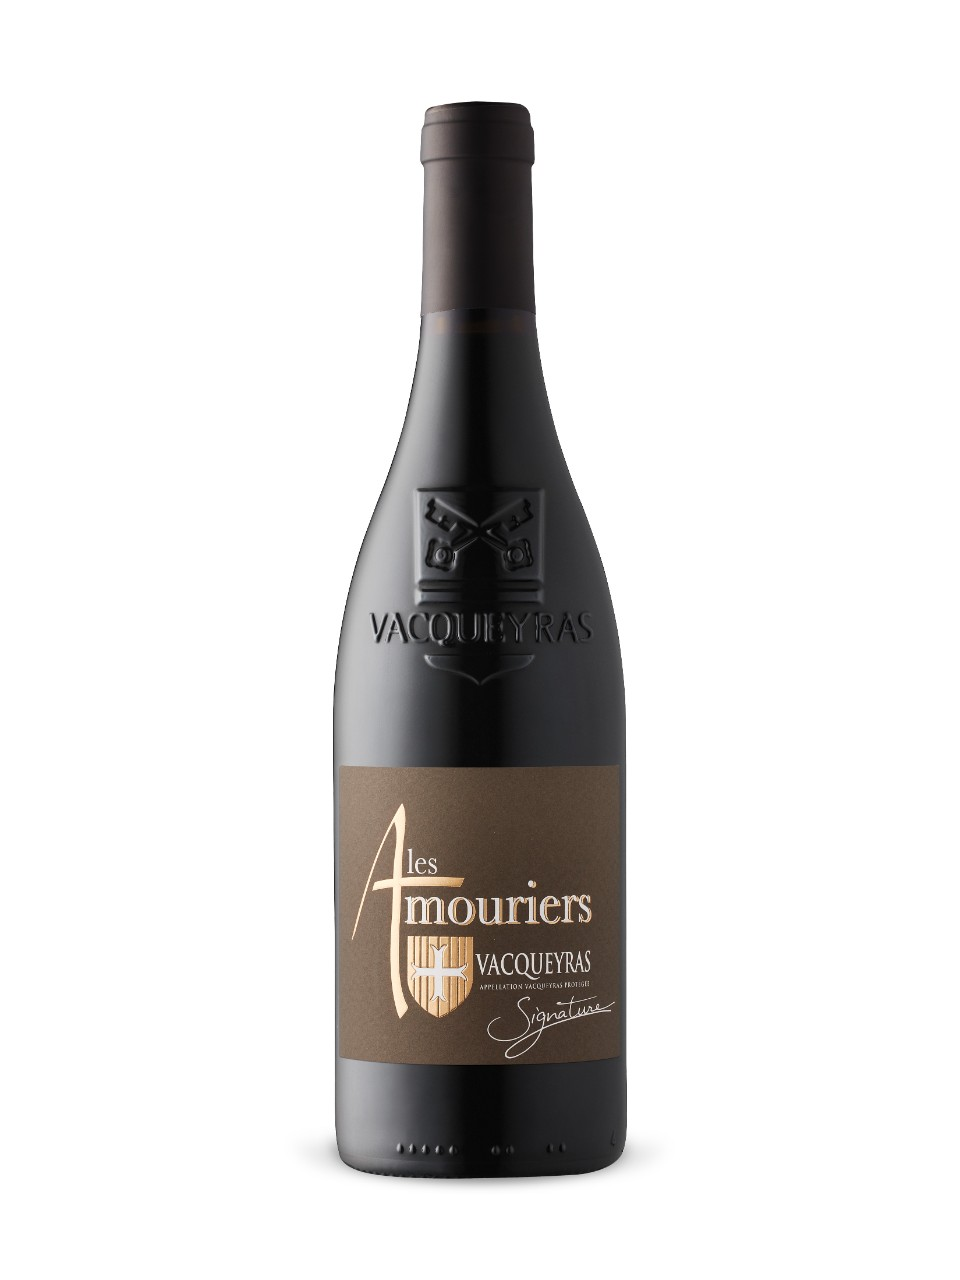 Image for Les Amouriers Signature Vacqueyras 2015 from LCBO